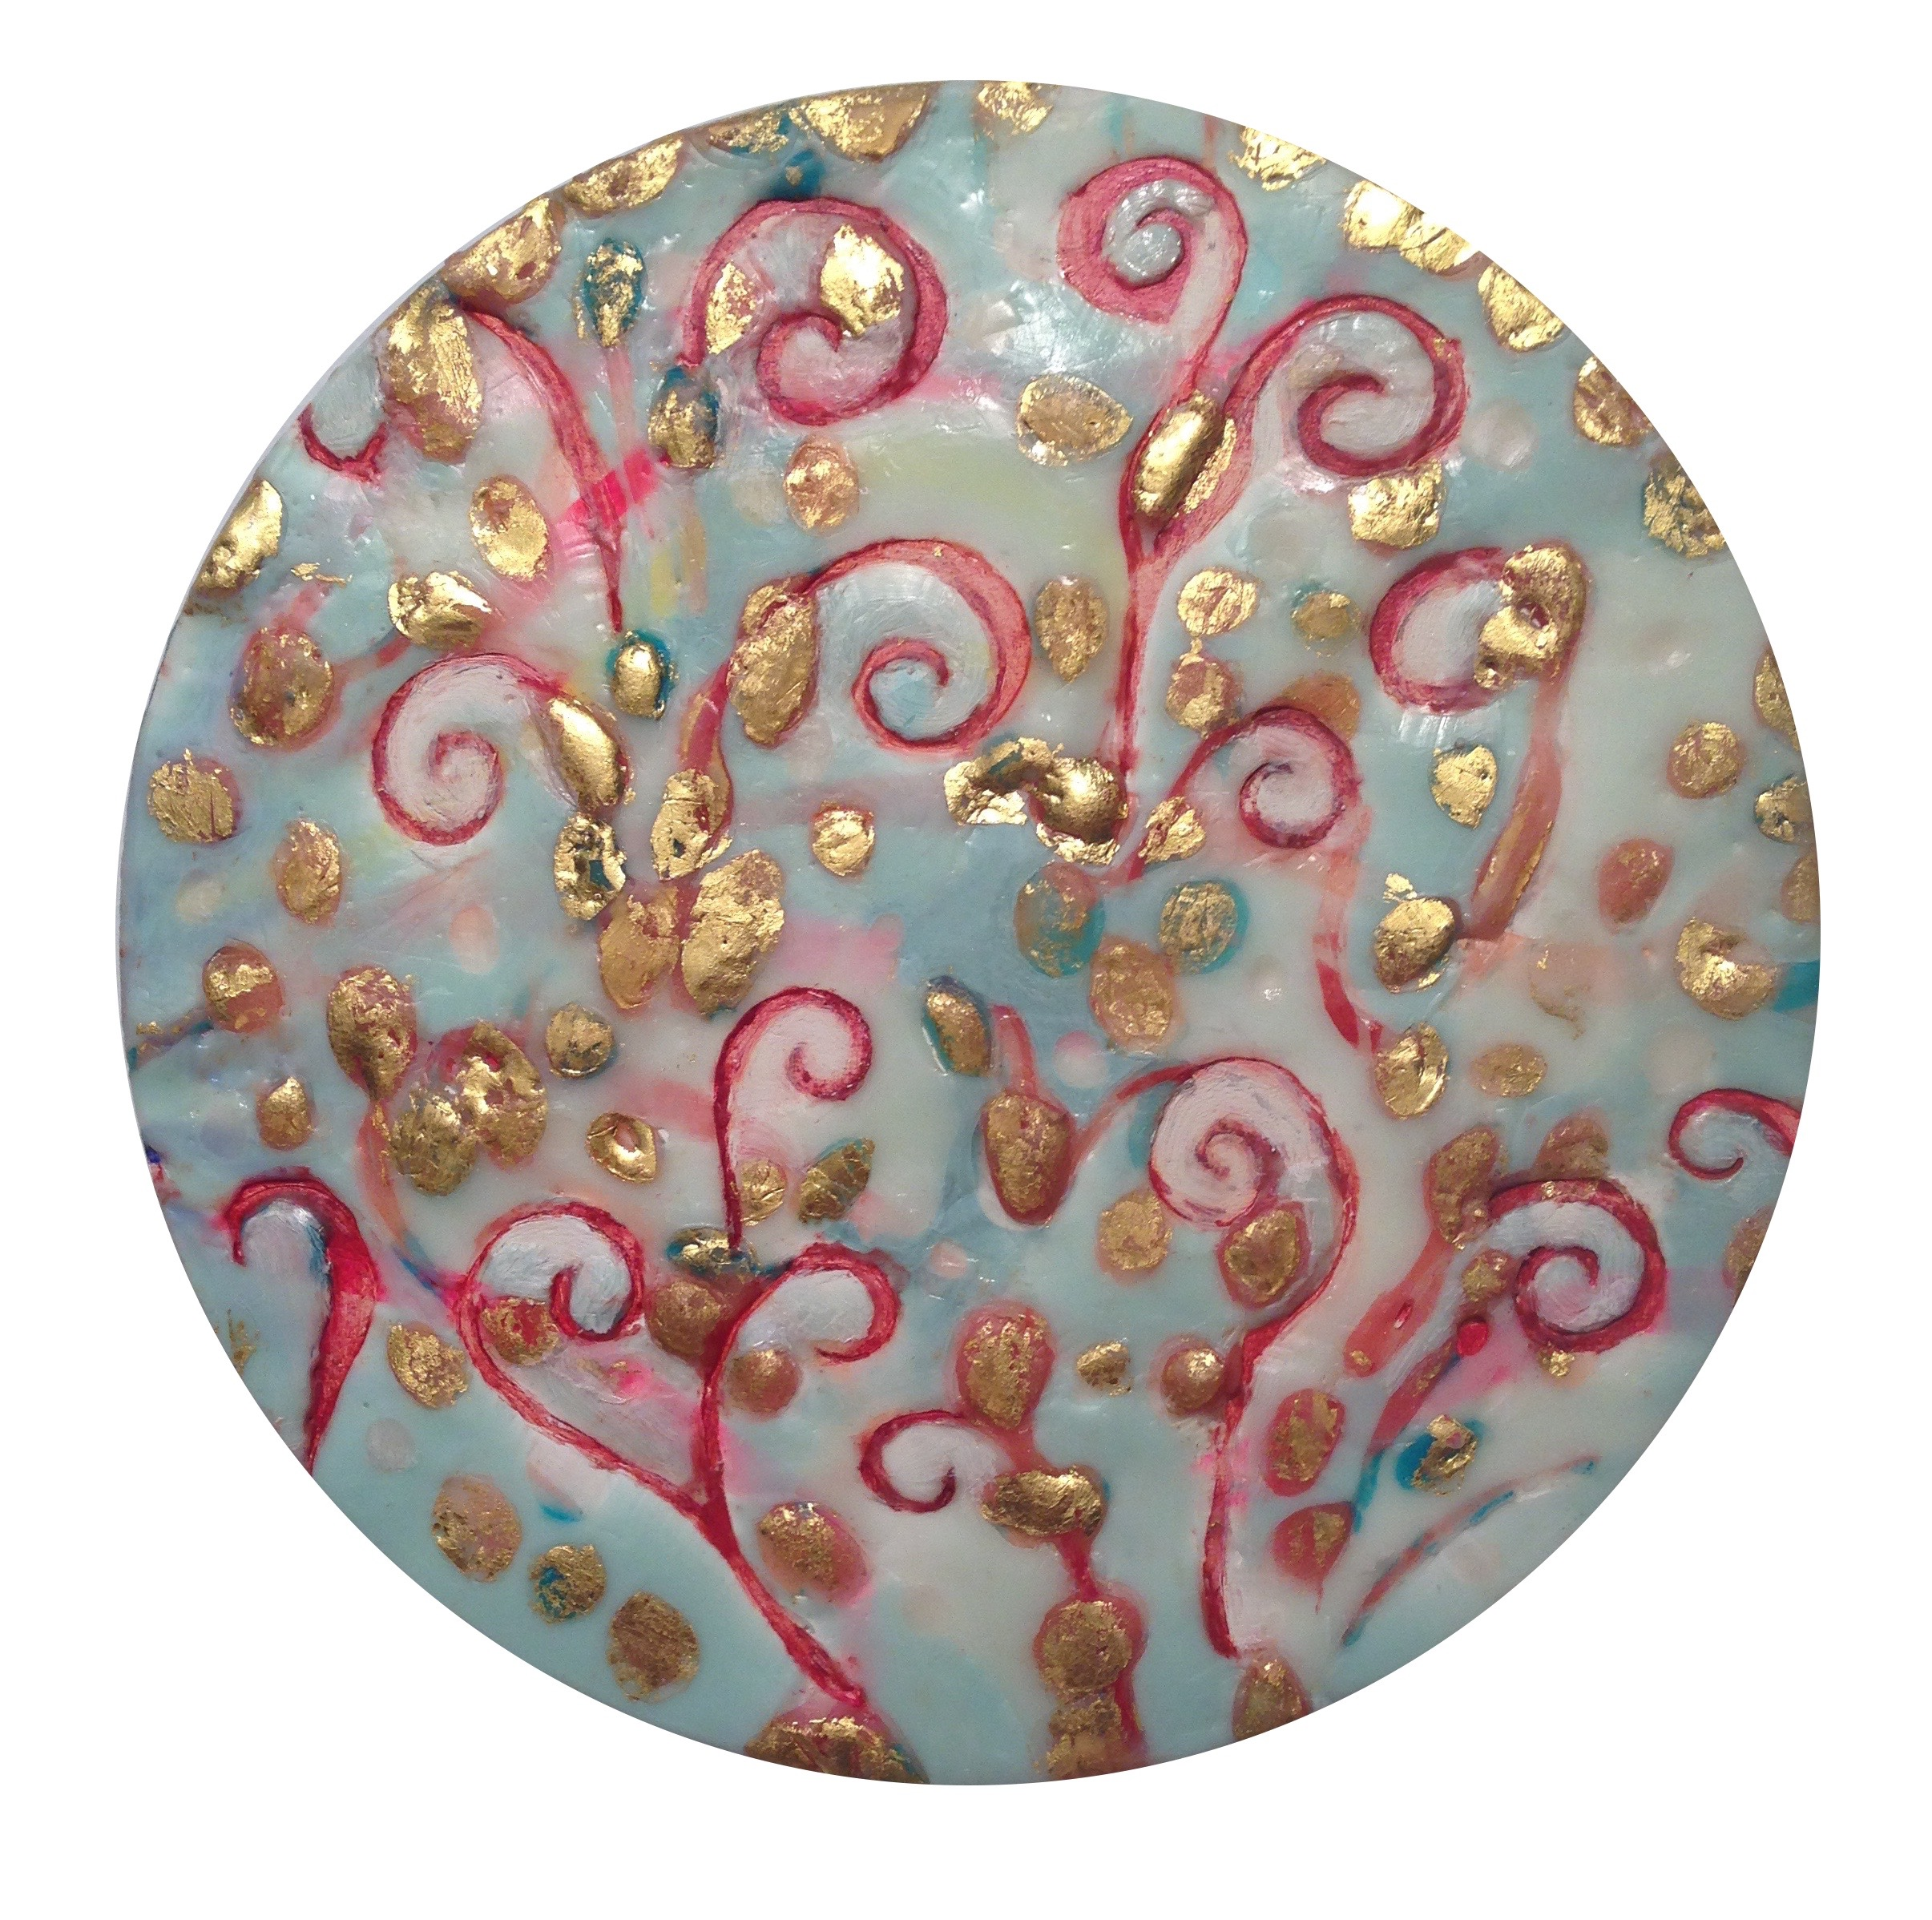 """Gentle Breeze on Celadon Sea ,  Birth of Venus  by Maggie Simonelli  Passion Fire  series Encaustic(cosmetic grade beeswax), 22 kt gold leaf, Chinese Cinnabar, CHANEL 104  Passion  lipstick, crushed pearls, crushed oyster shells, and pigments on birch panel 9"""" D (sold)"""